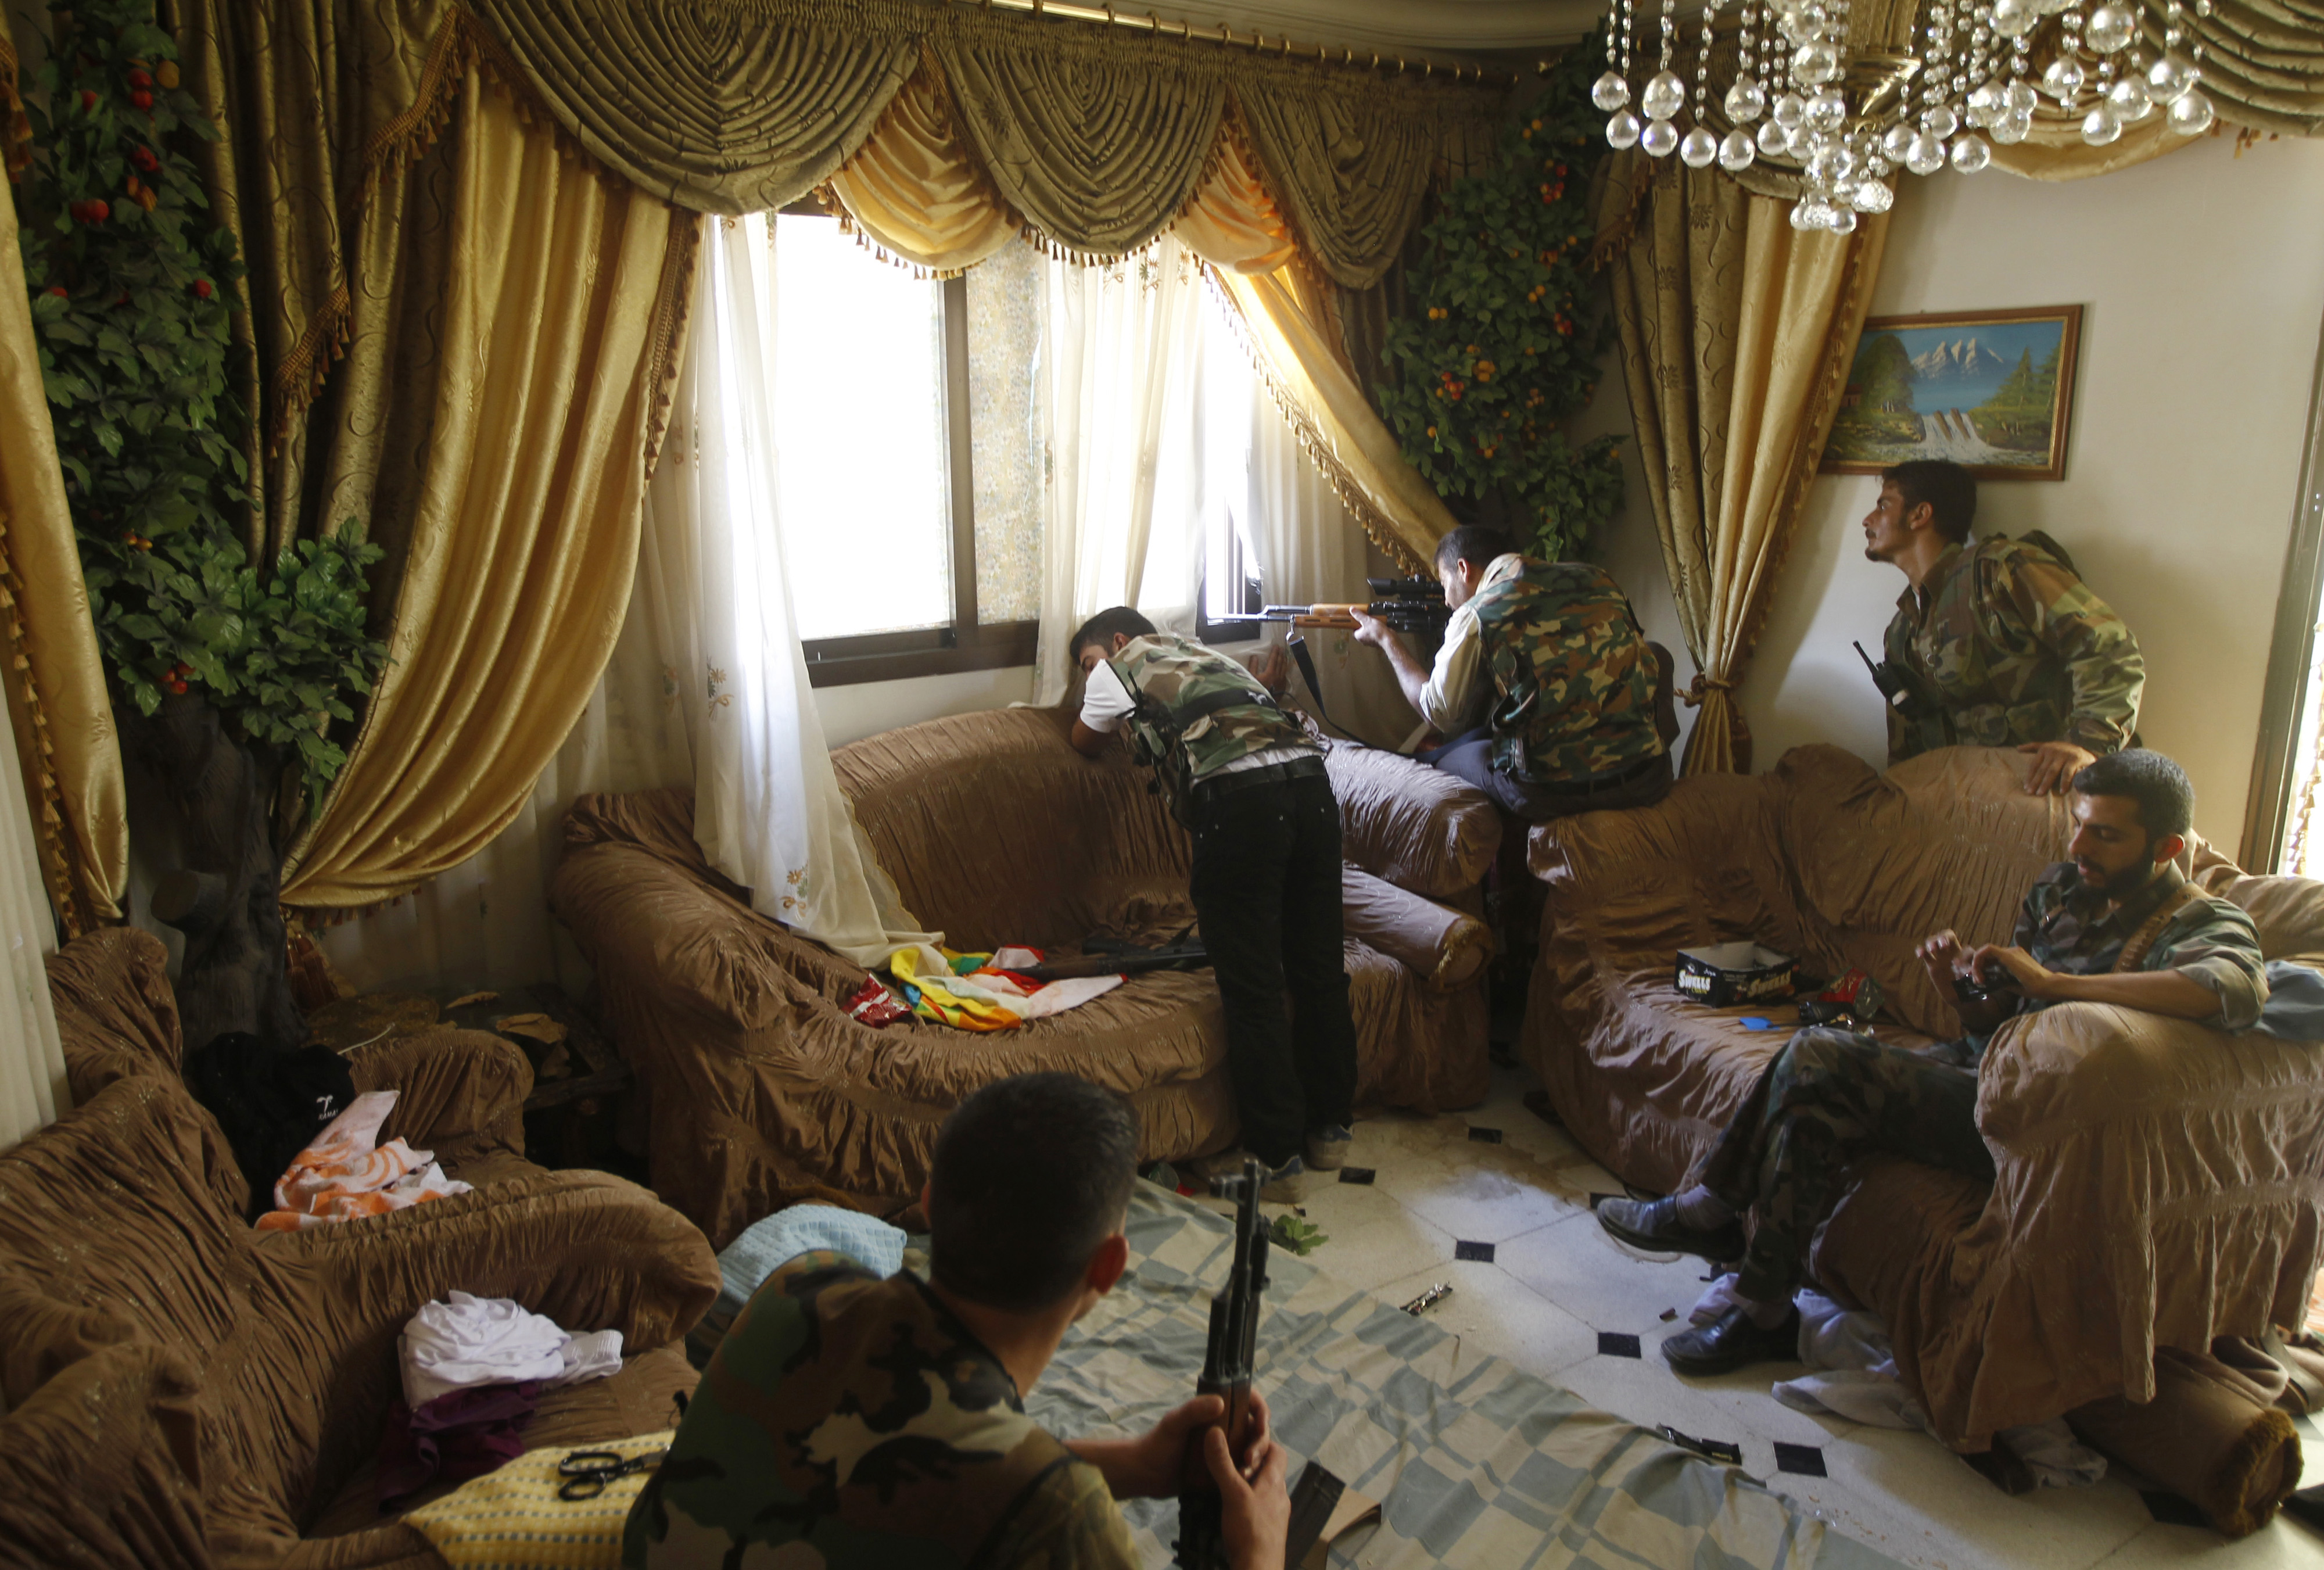 Goran Tomasevic                                                               I like these pictures where some fighters took up positions in a family living room. One rebel sat on the chair eating a chocolate bar as the commander looked out the window to scout the area beside a rebel firing from the window. They told me it was a former Syrian army position and they had killed three soldiers in the house — I could see a track of blood in the corridor. There was no one else in the house except the rebels.